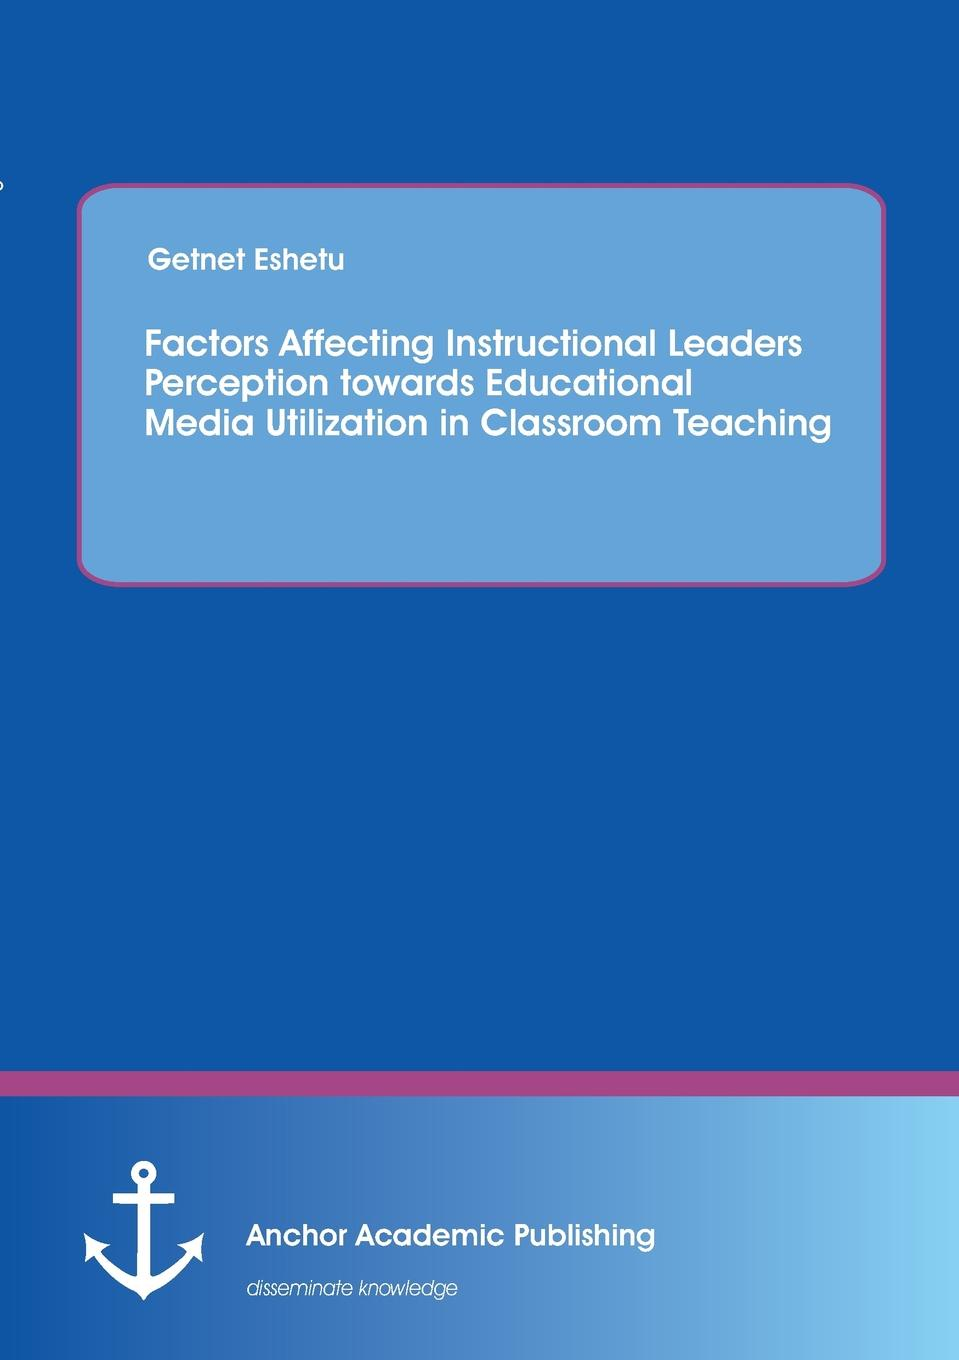 Getnet Eshetu Factors Affecting Instructional Leaders Perception towards Educational Media Utilization in Classroom Teaching stephen fink leading for instructional improvement how successful leaders develop teaching and learning expertise